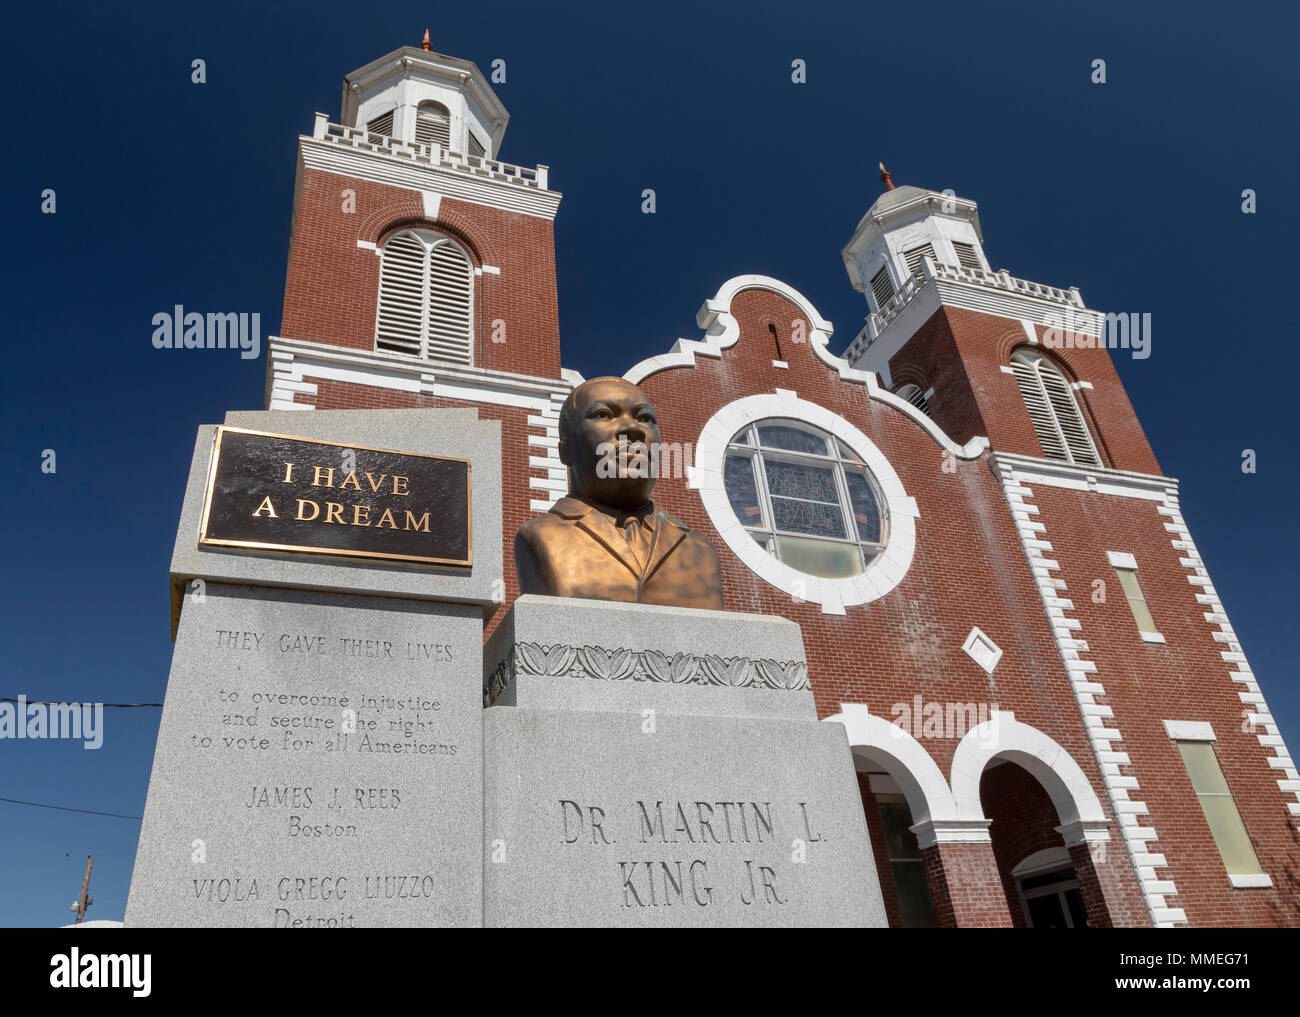 Selma, Alabama - The Brown Chapel AME Church, where Martin Luther King Jr. led a struggle for voting rights in 1965 that climaxed with the Selma to Mo - Stock Image